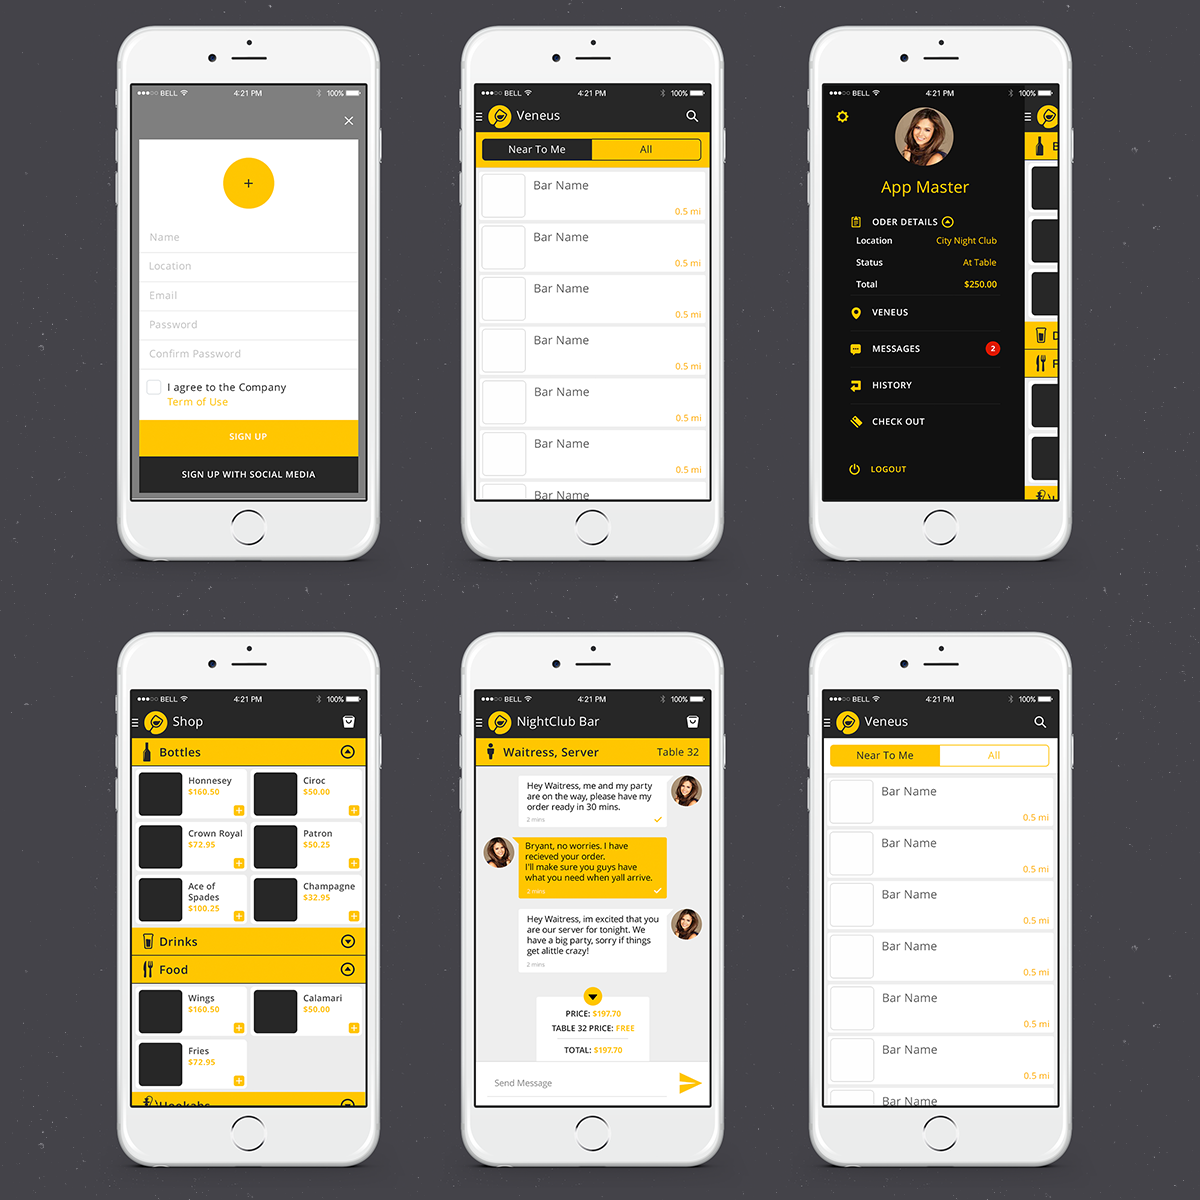 Elegant Playful App Design For Instant Communication Inc